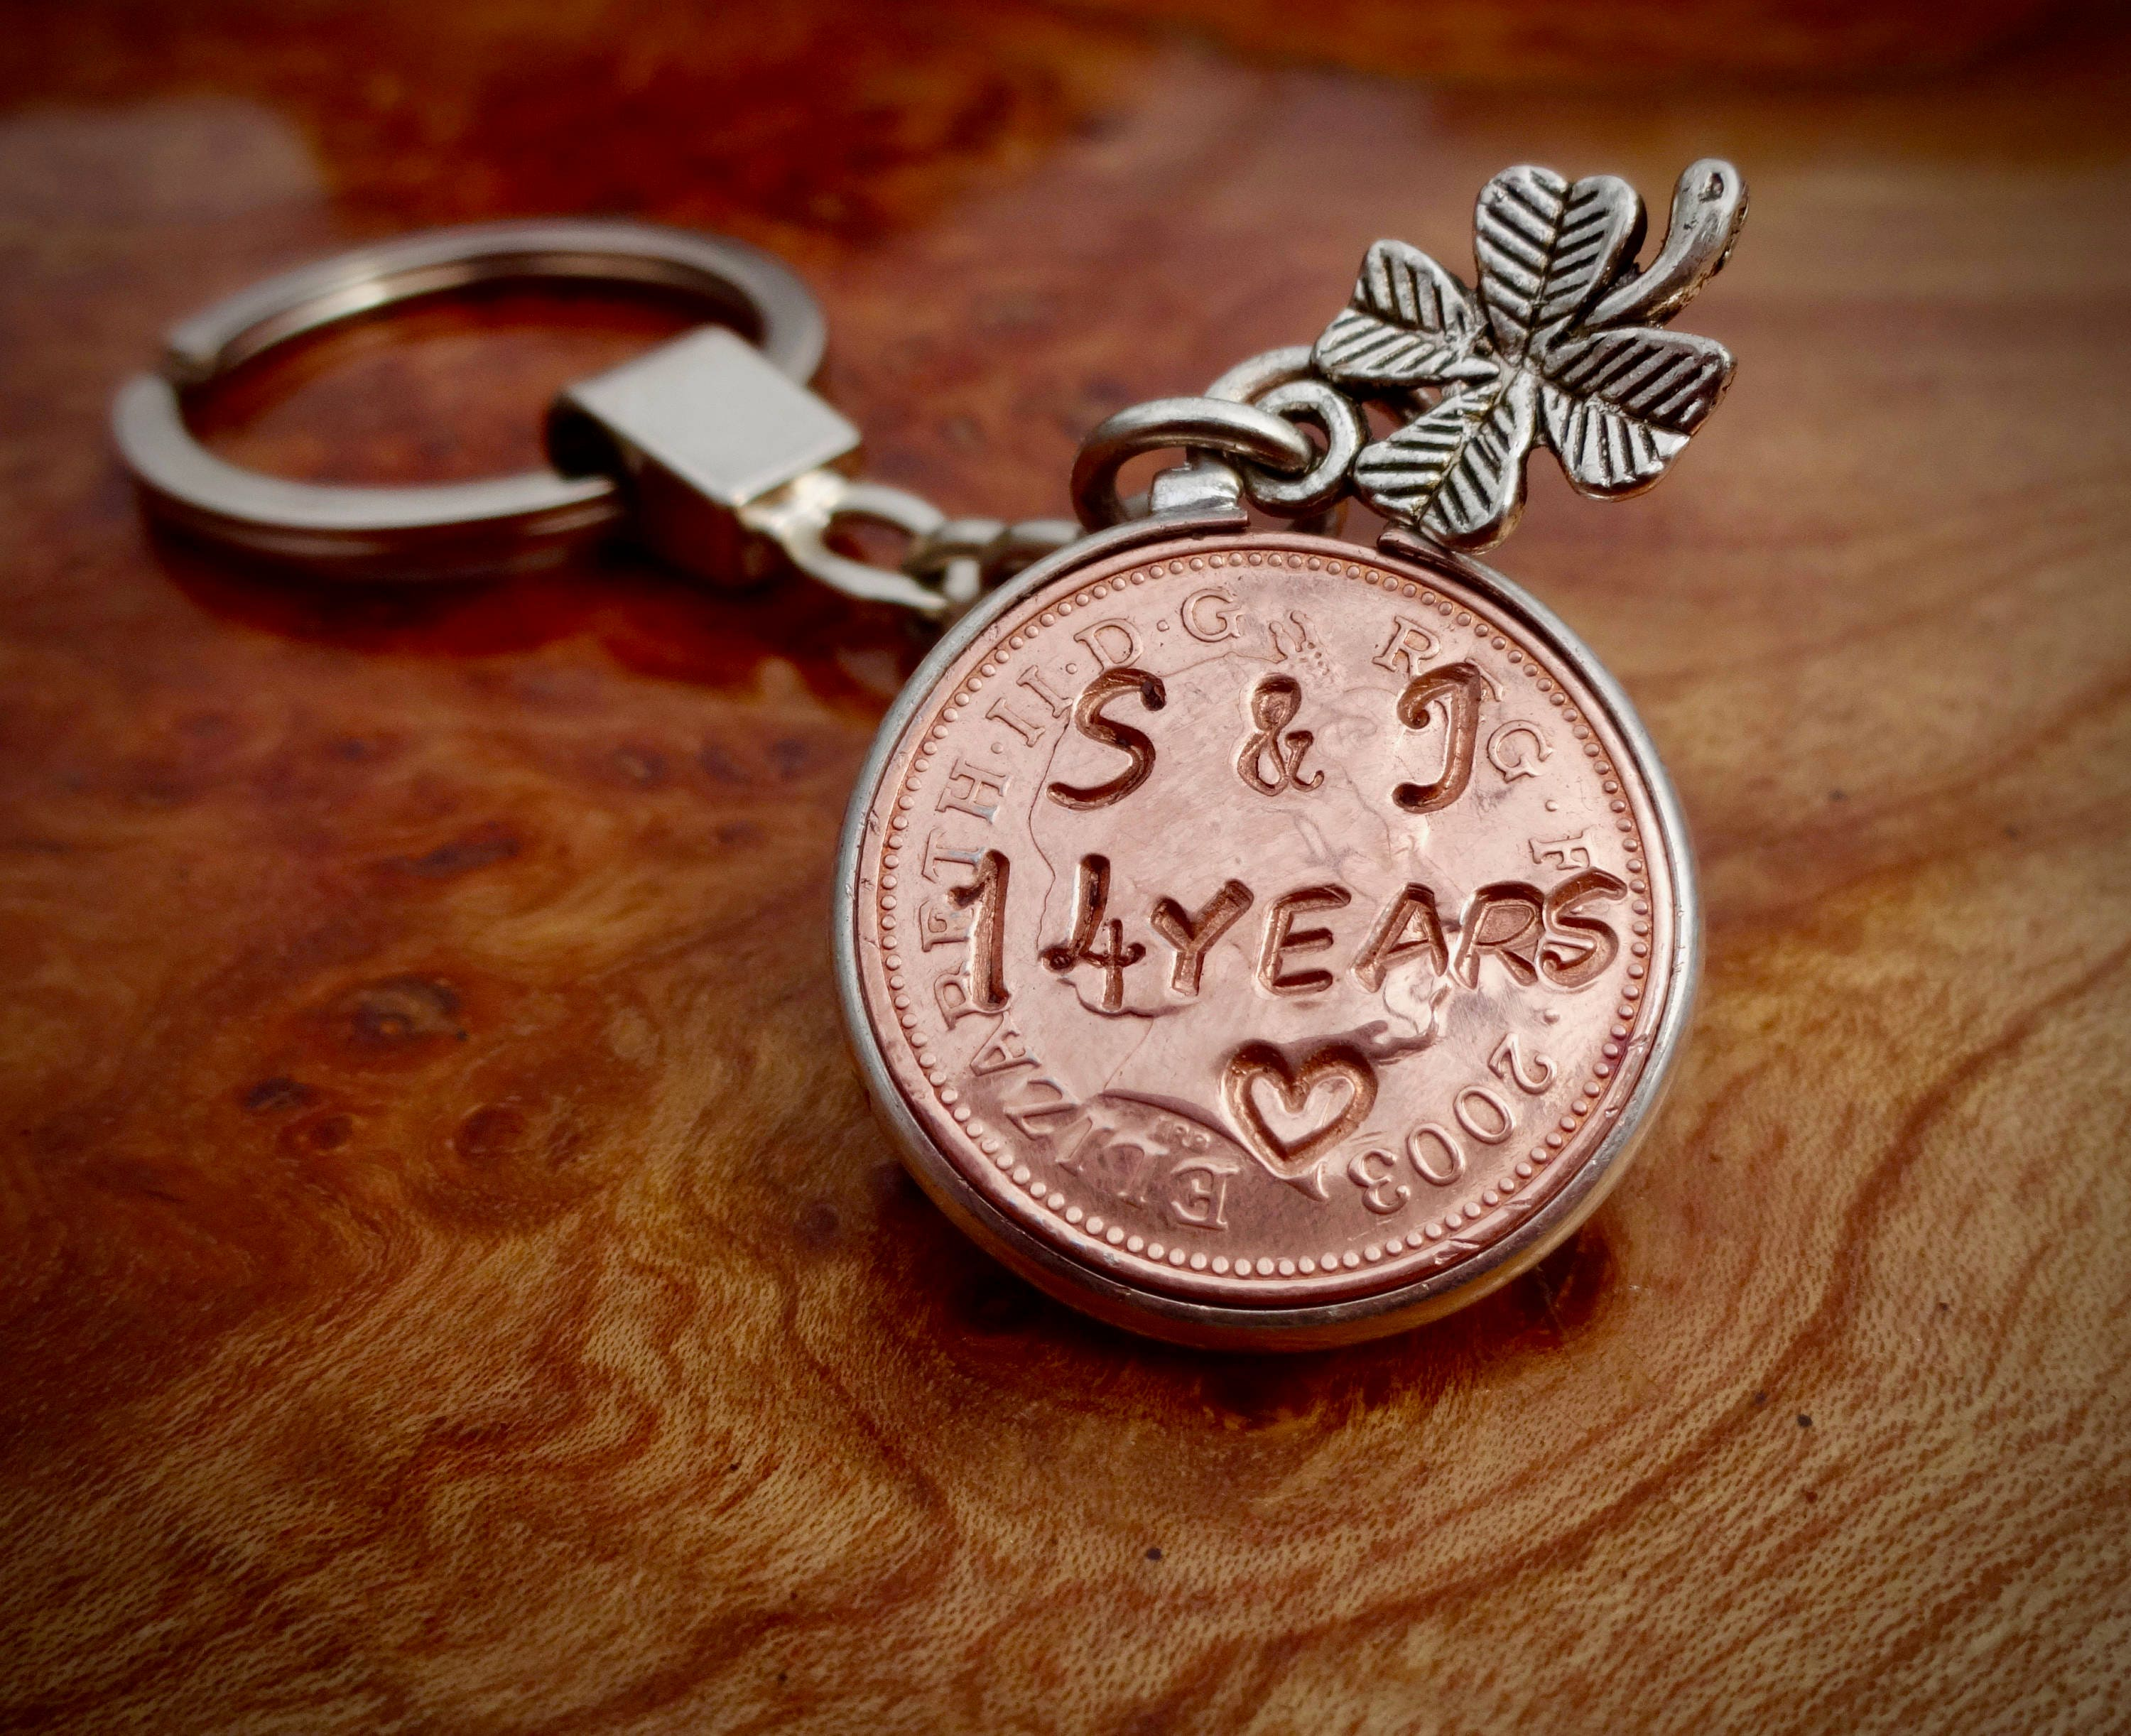 Gift Ideas For 14th Wedding Anniversary: 14th Lucky Penny Wedding Anniversary Gift 2003 Penny